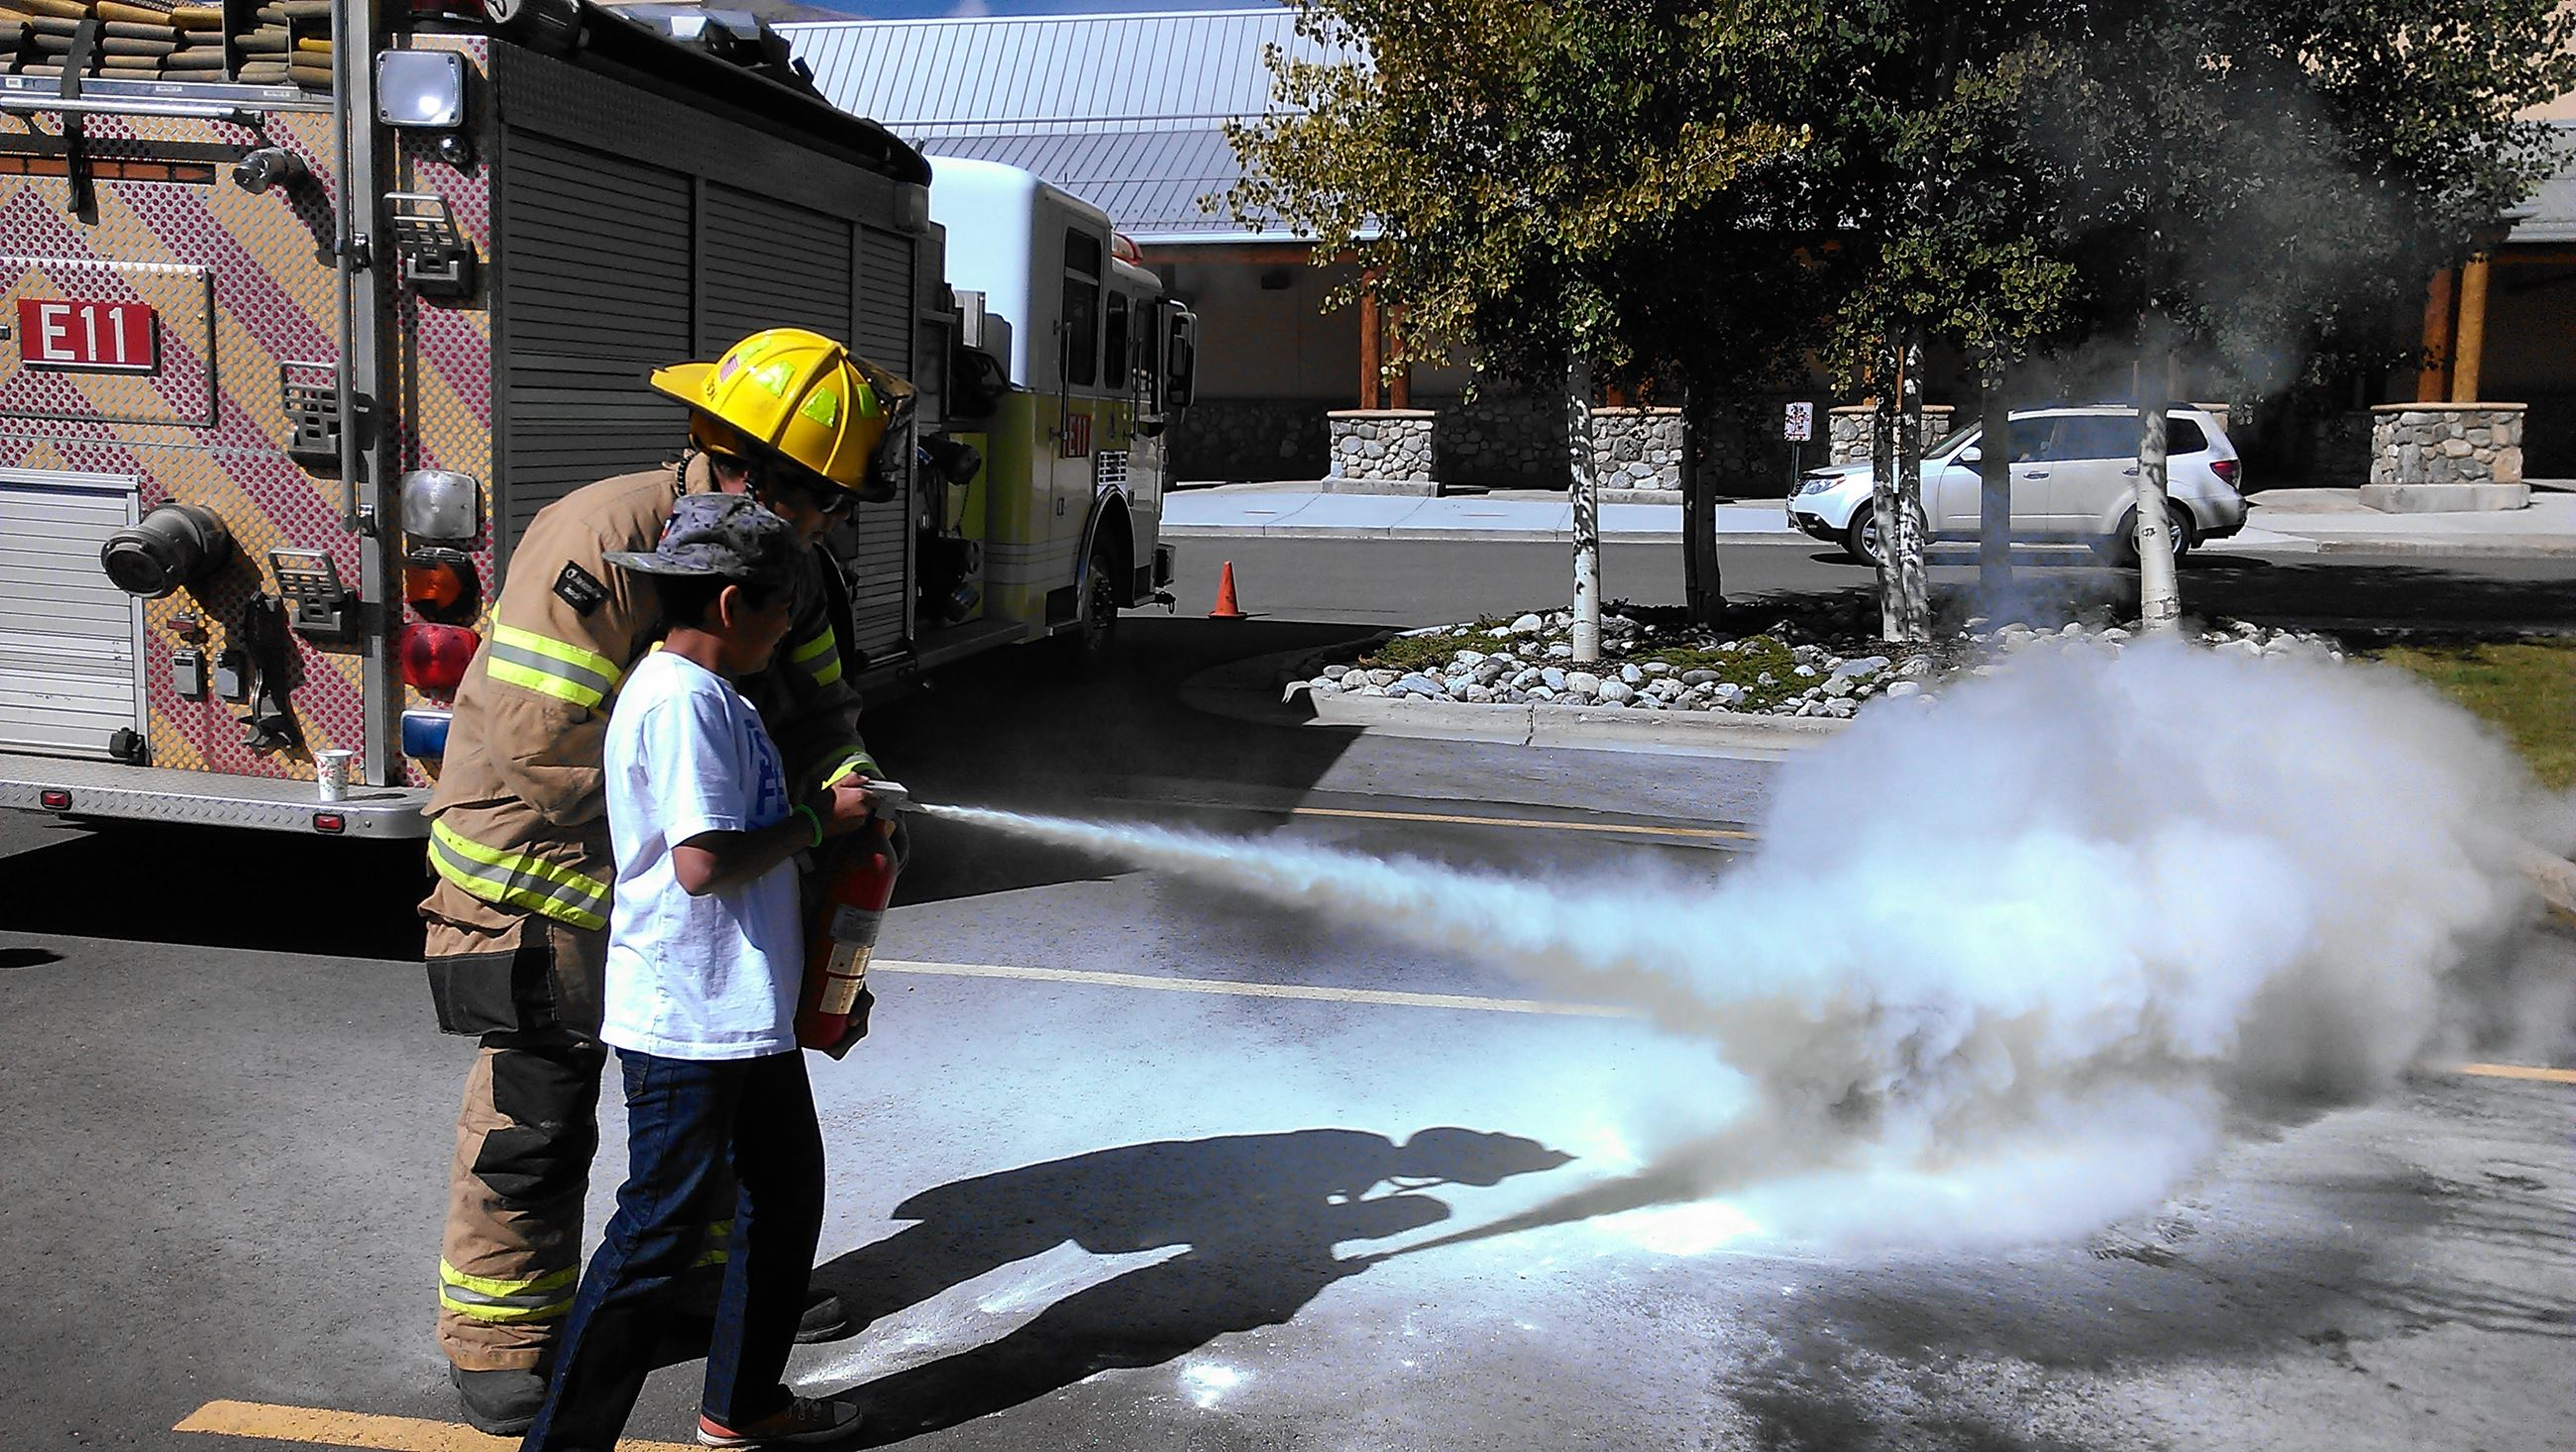 Firefighter Andrew Segura teaches the proper use of a fire extinguisher